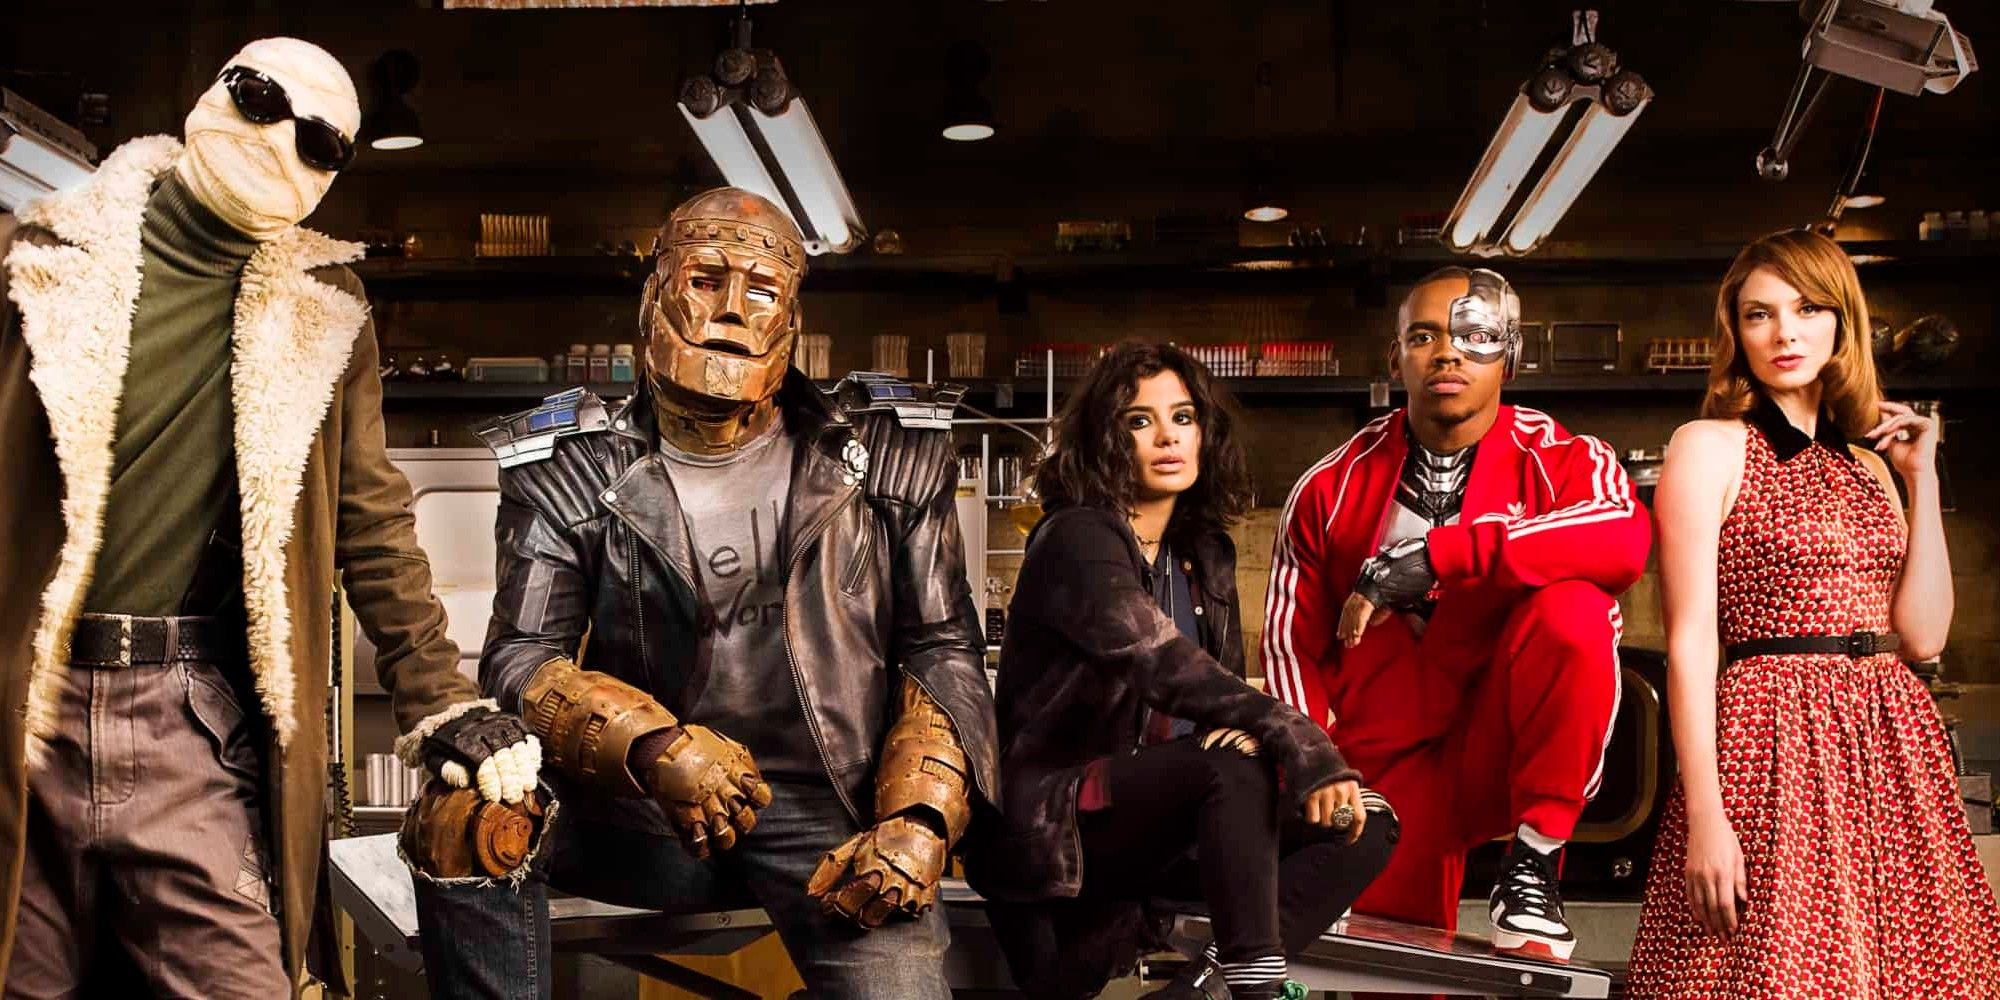 Doom Patrol Hbo Max Offering The First Three Episodes Free For